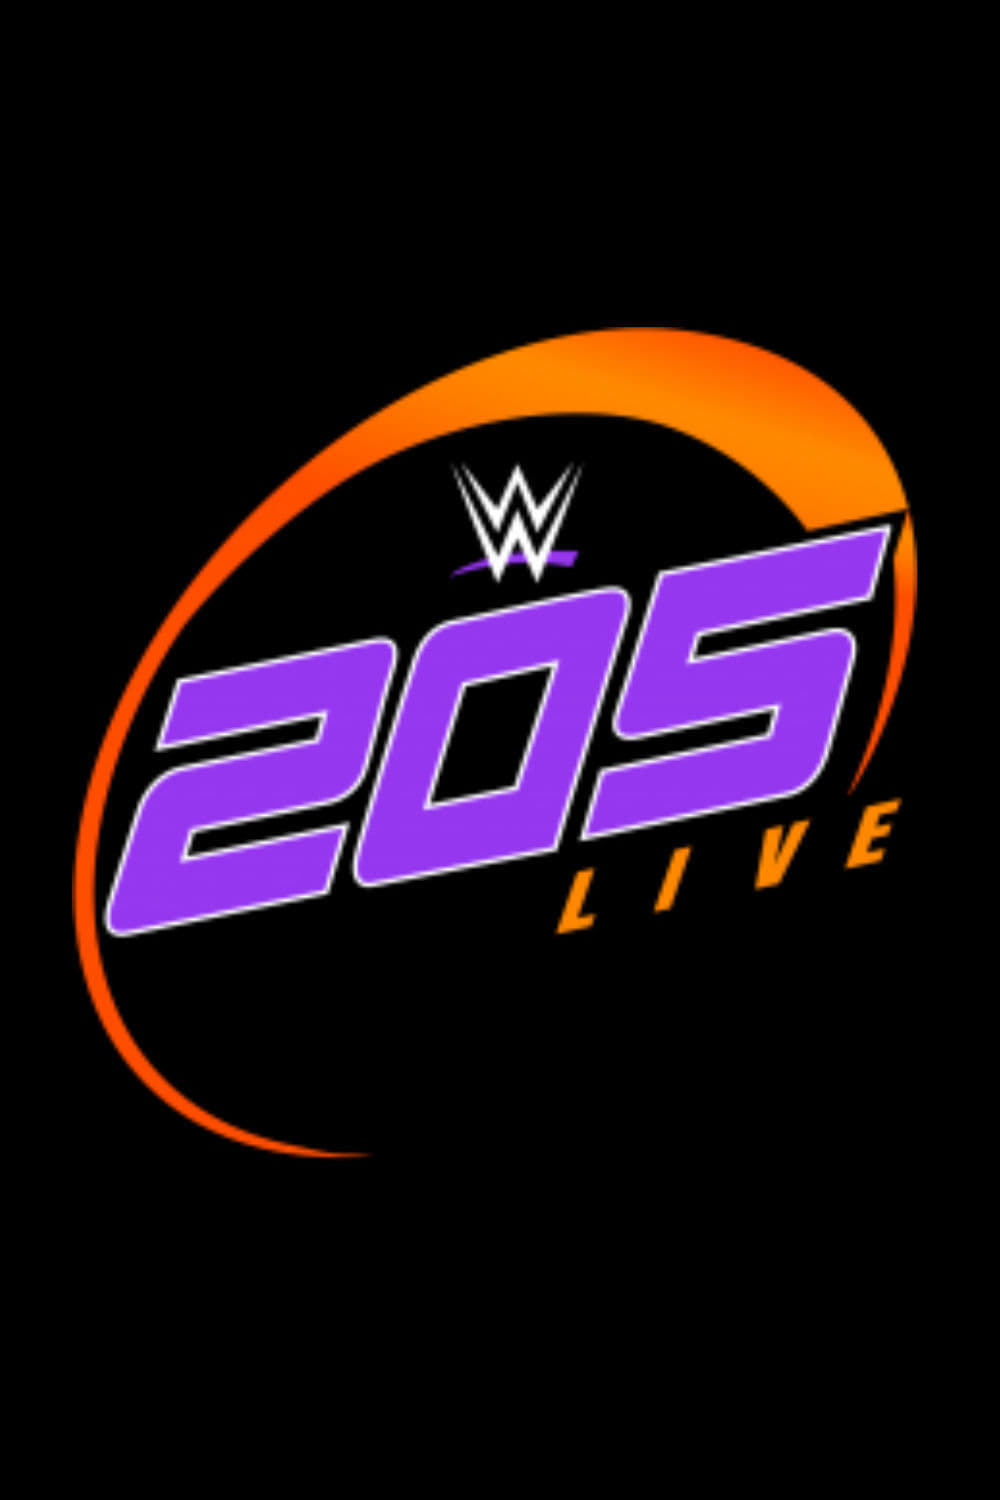 image for WWE 205 Live